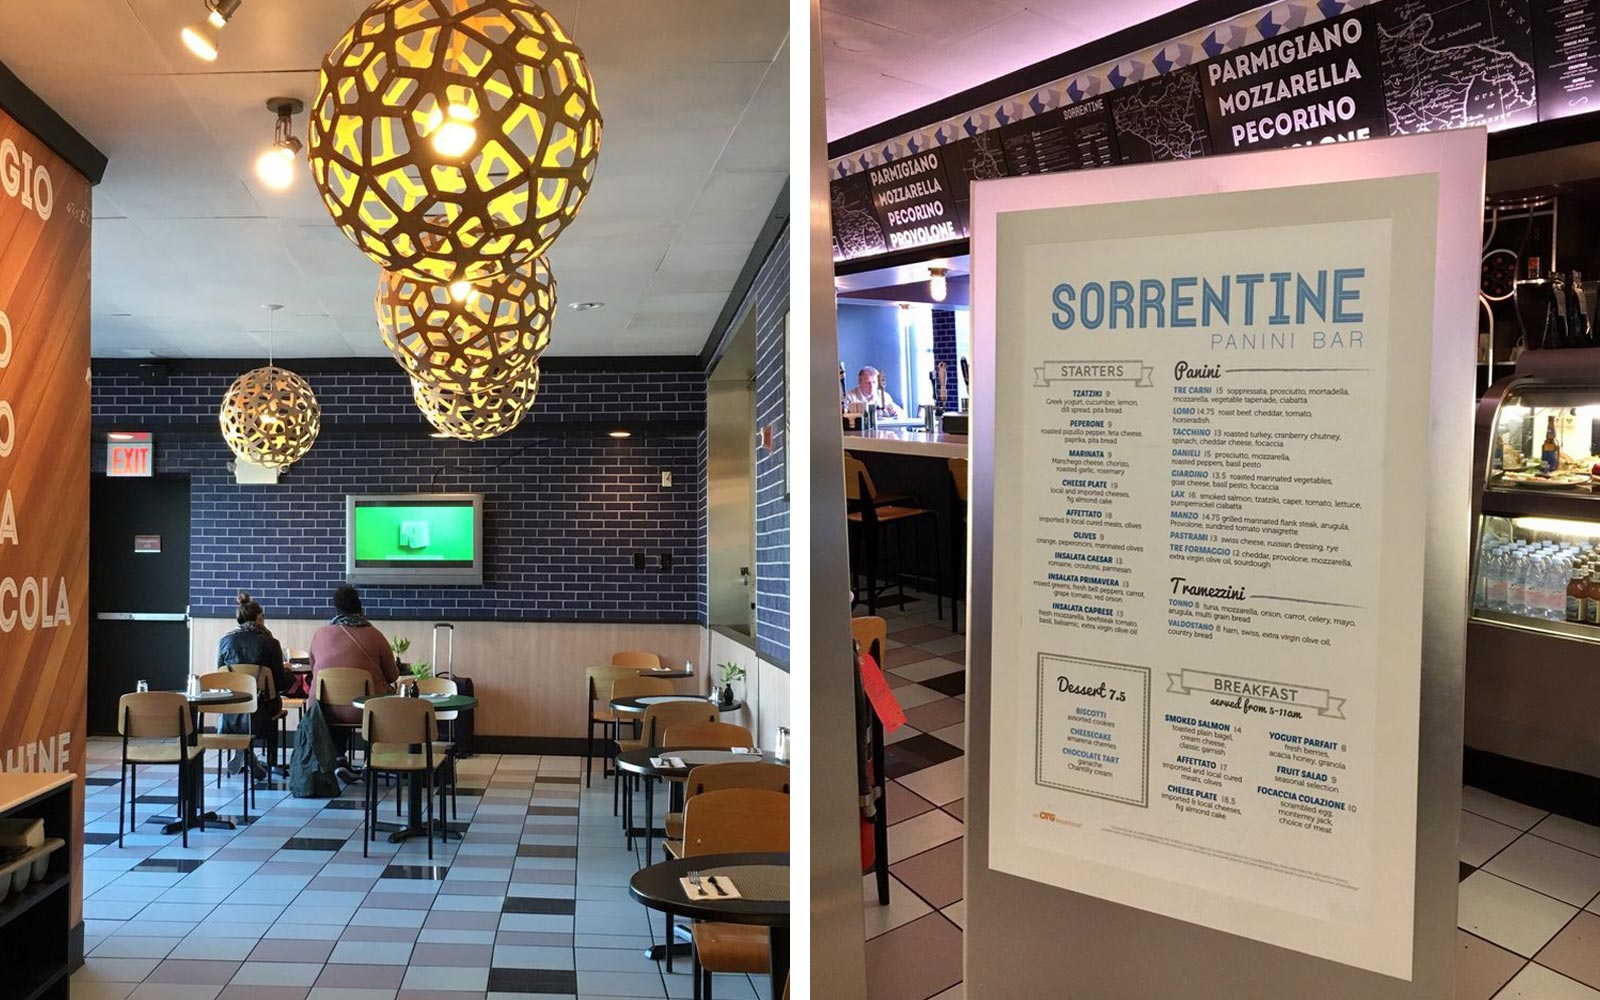 Sorentine Panini Bar, Laguardia Airport, New York